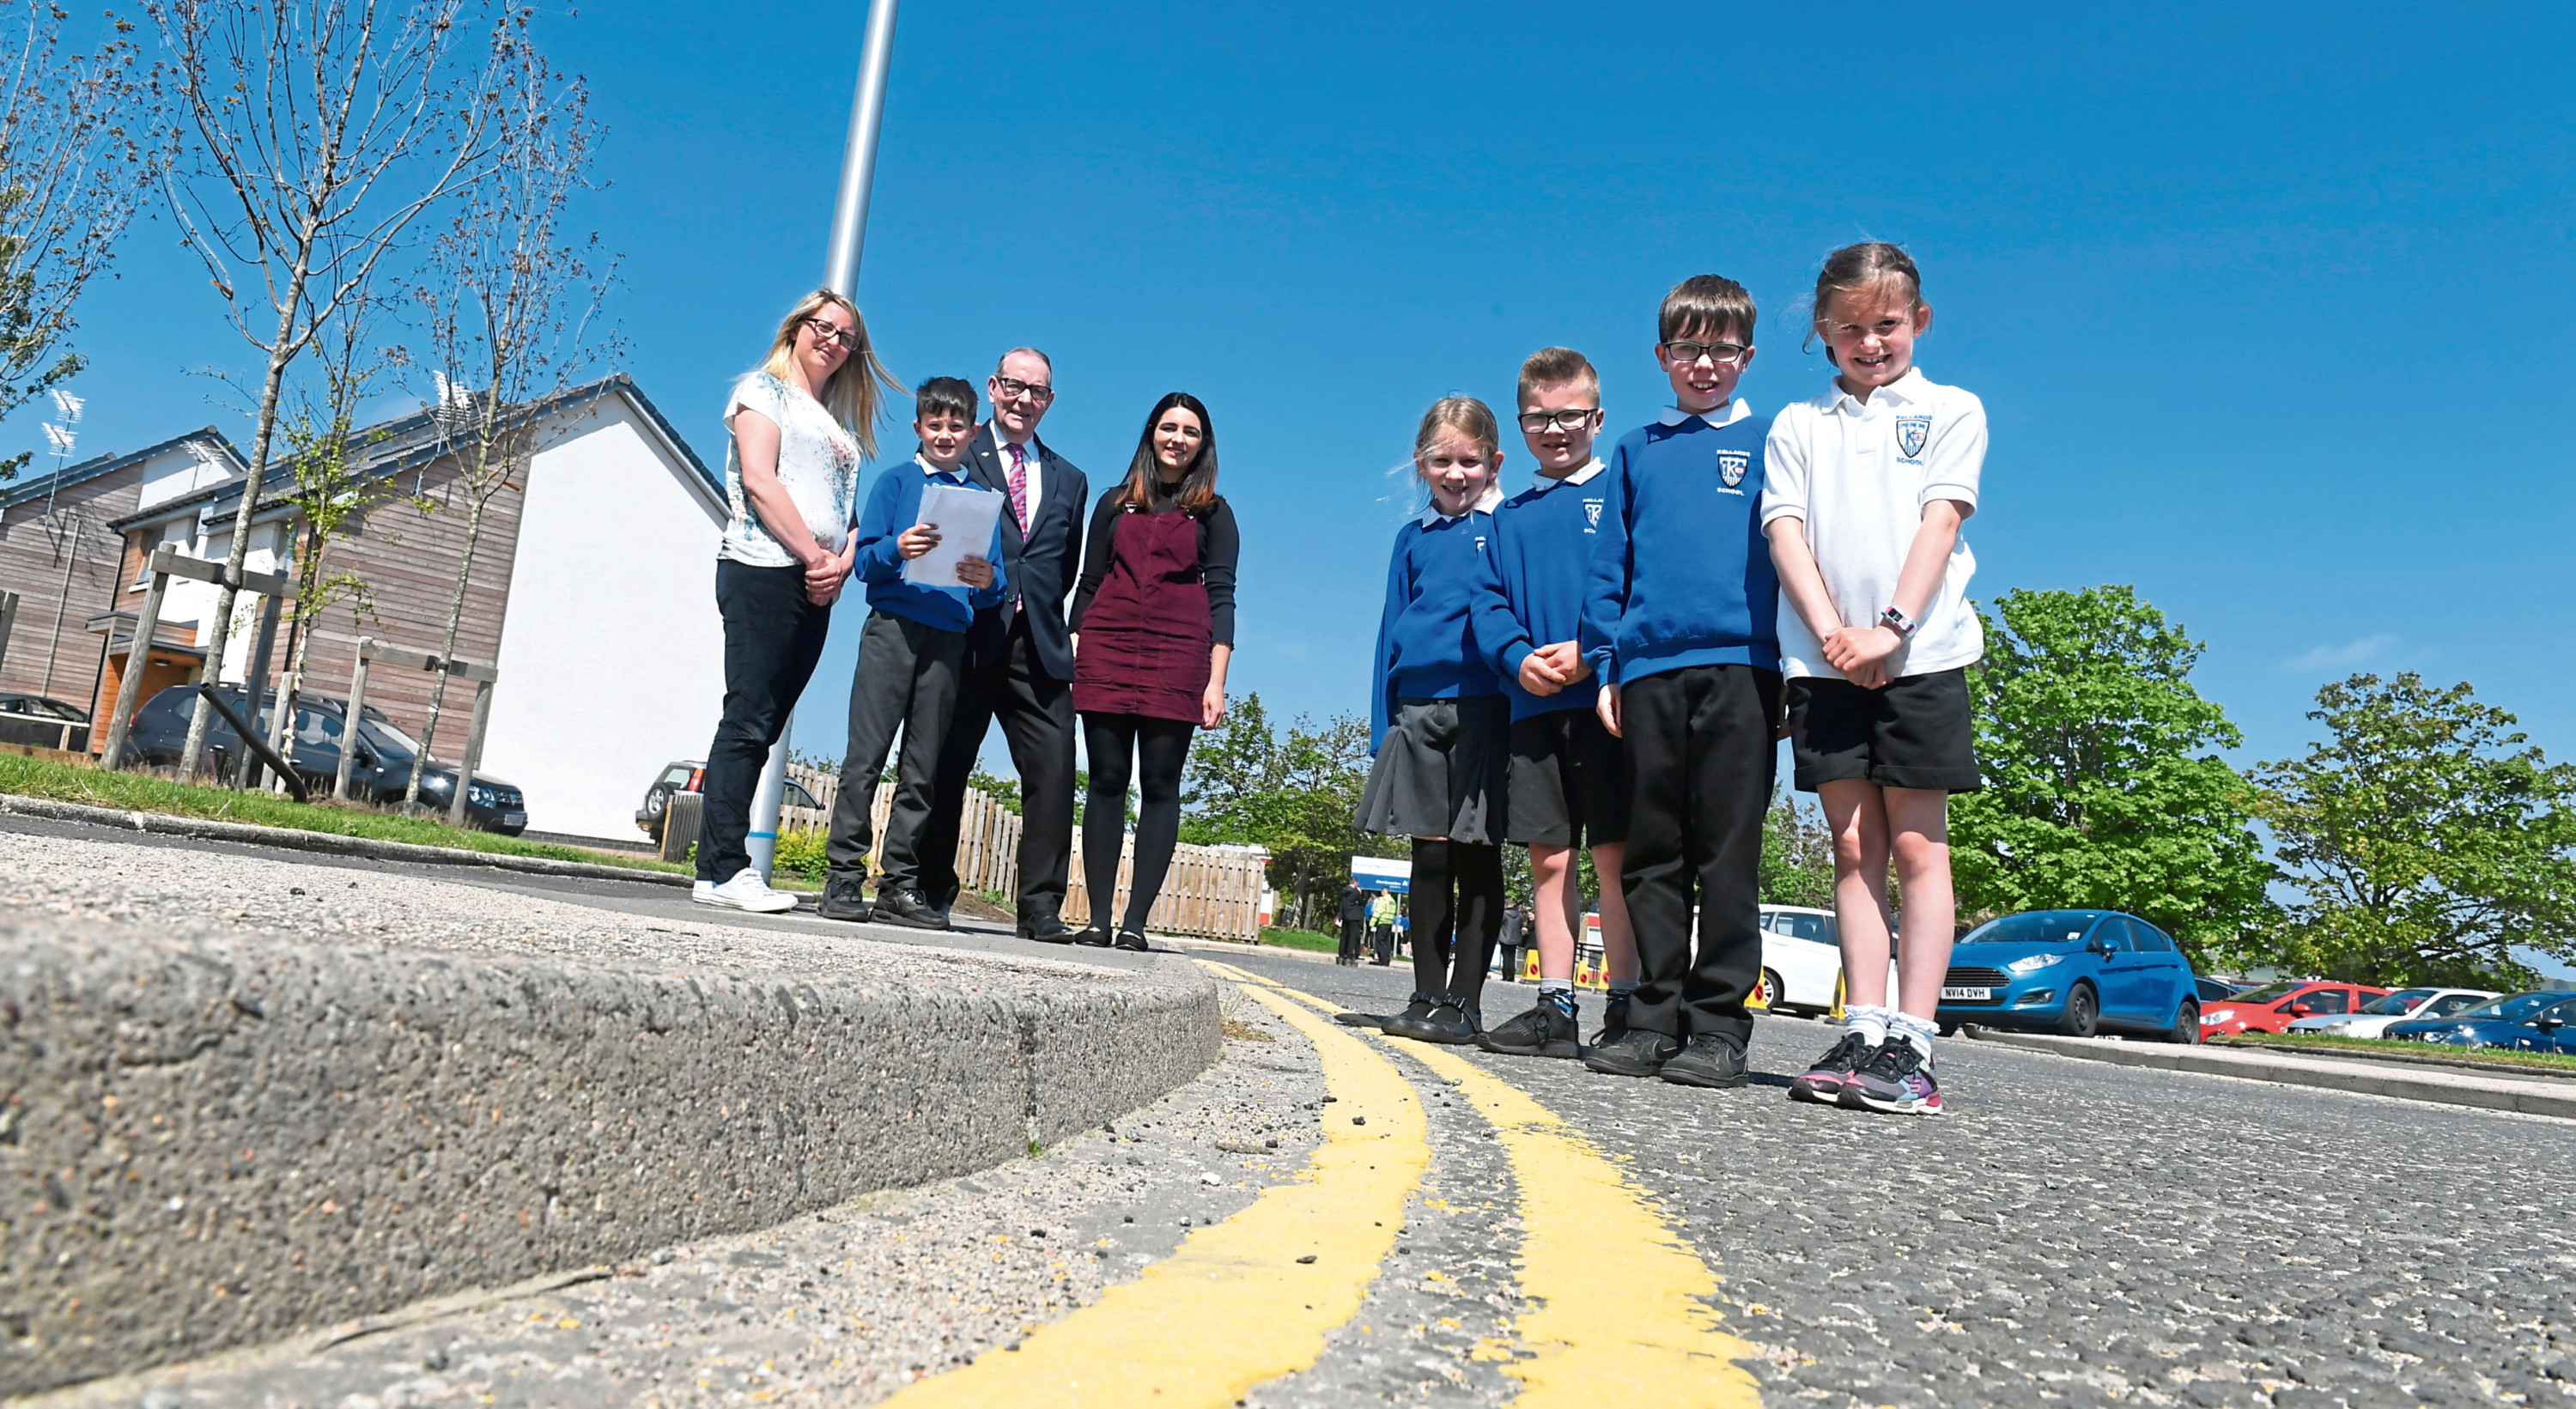 Park Smart was launched at Kellands School in Inverurie